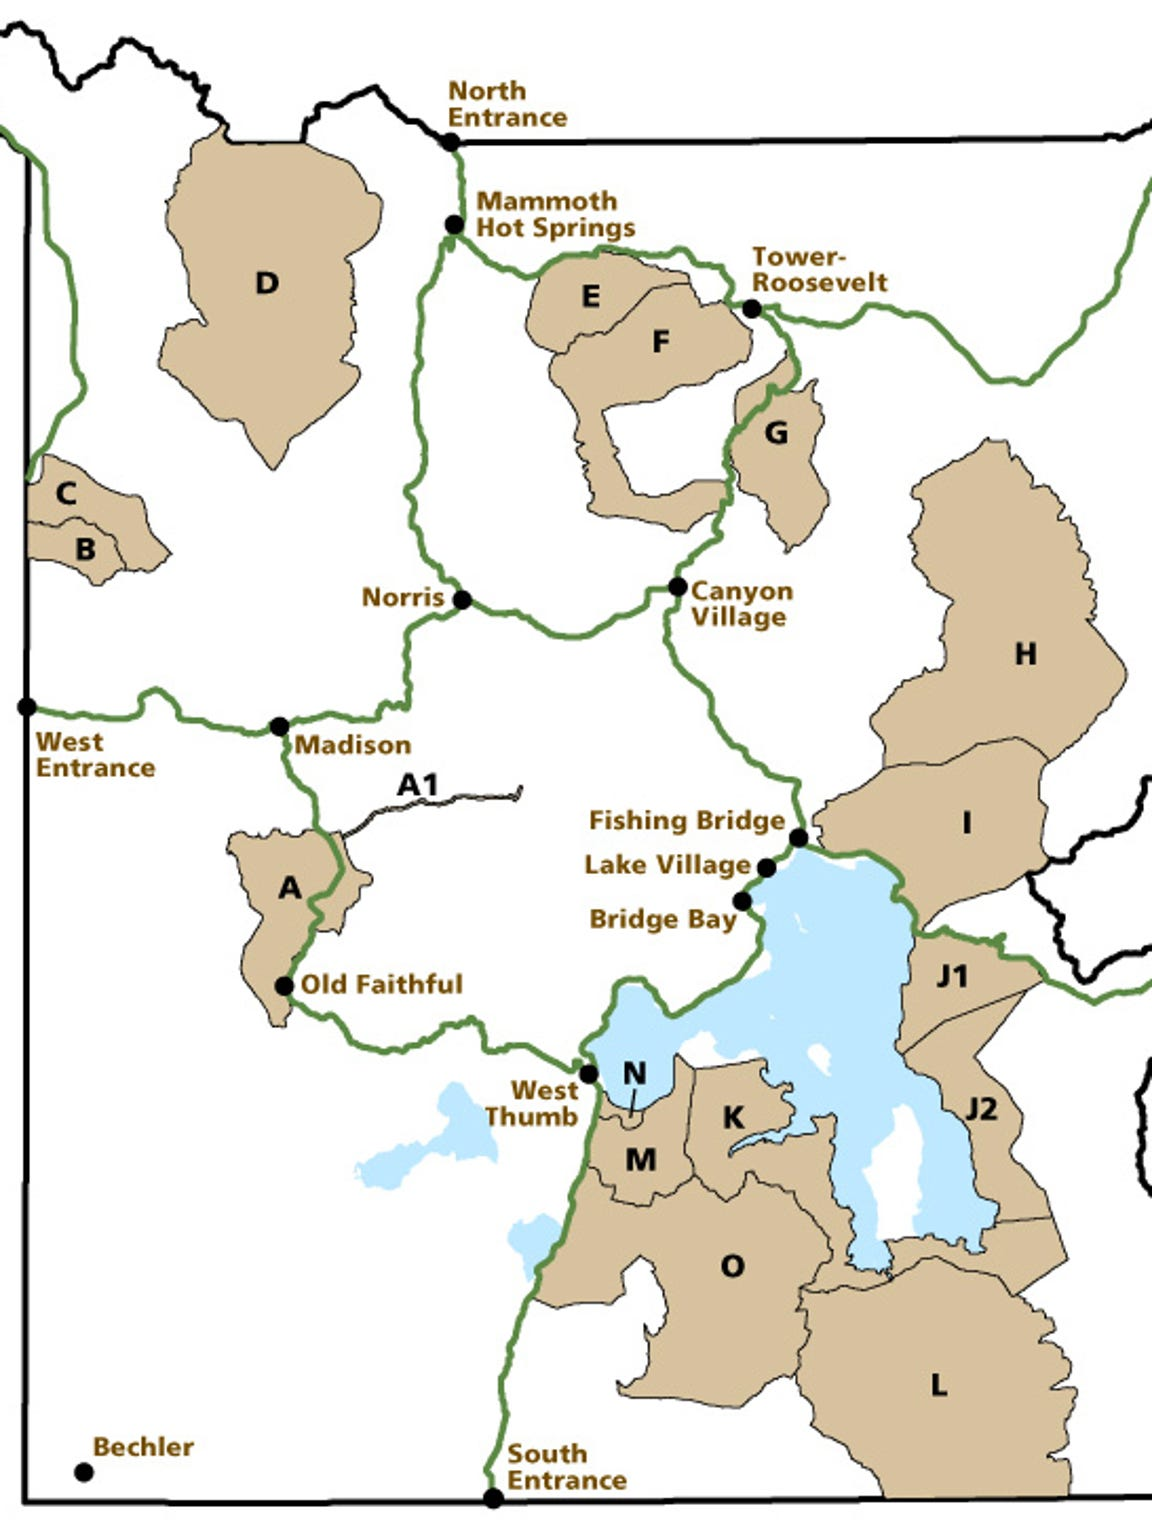 There are 17 bear management areas in Yellowstone National Park.